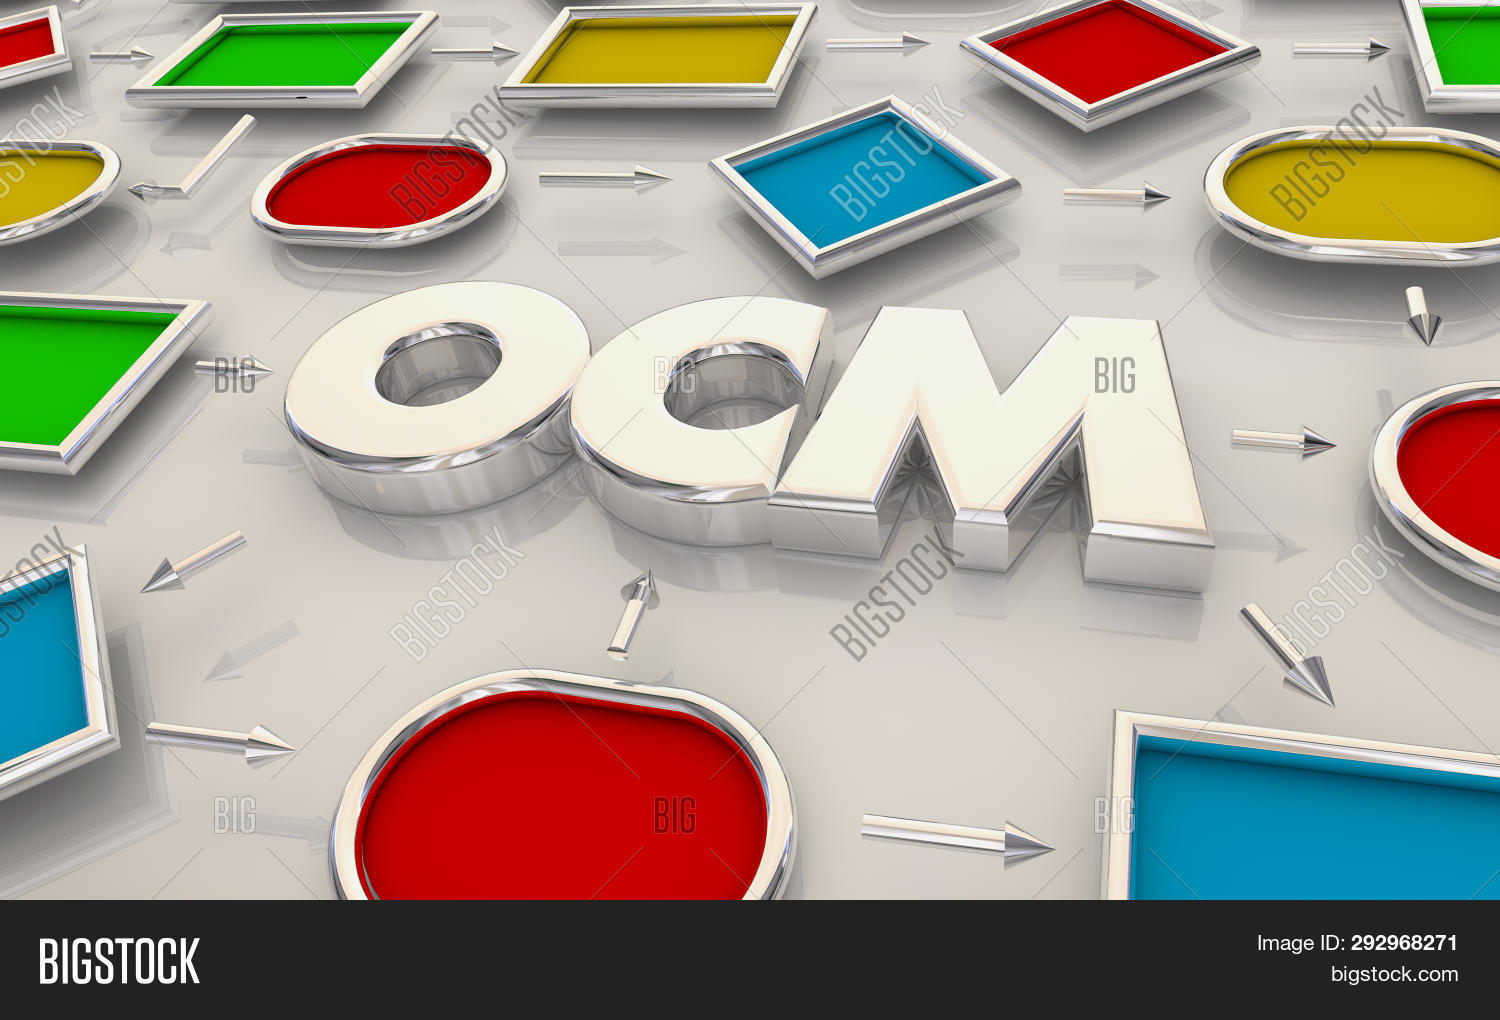 OCM Organizational Image & Photo (Free Trial) | Bigstock on map code, map medical term, map centerpiece, map benelux belgium,